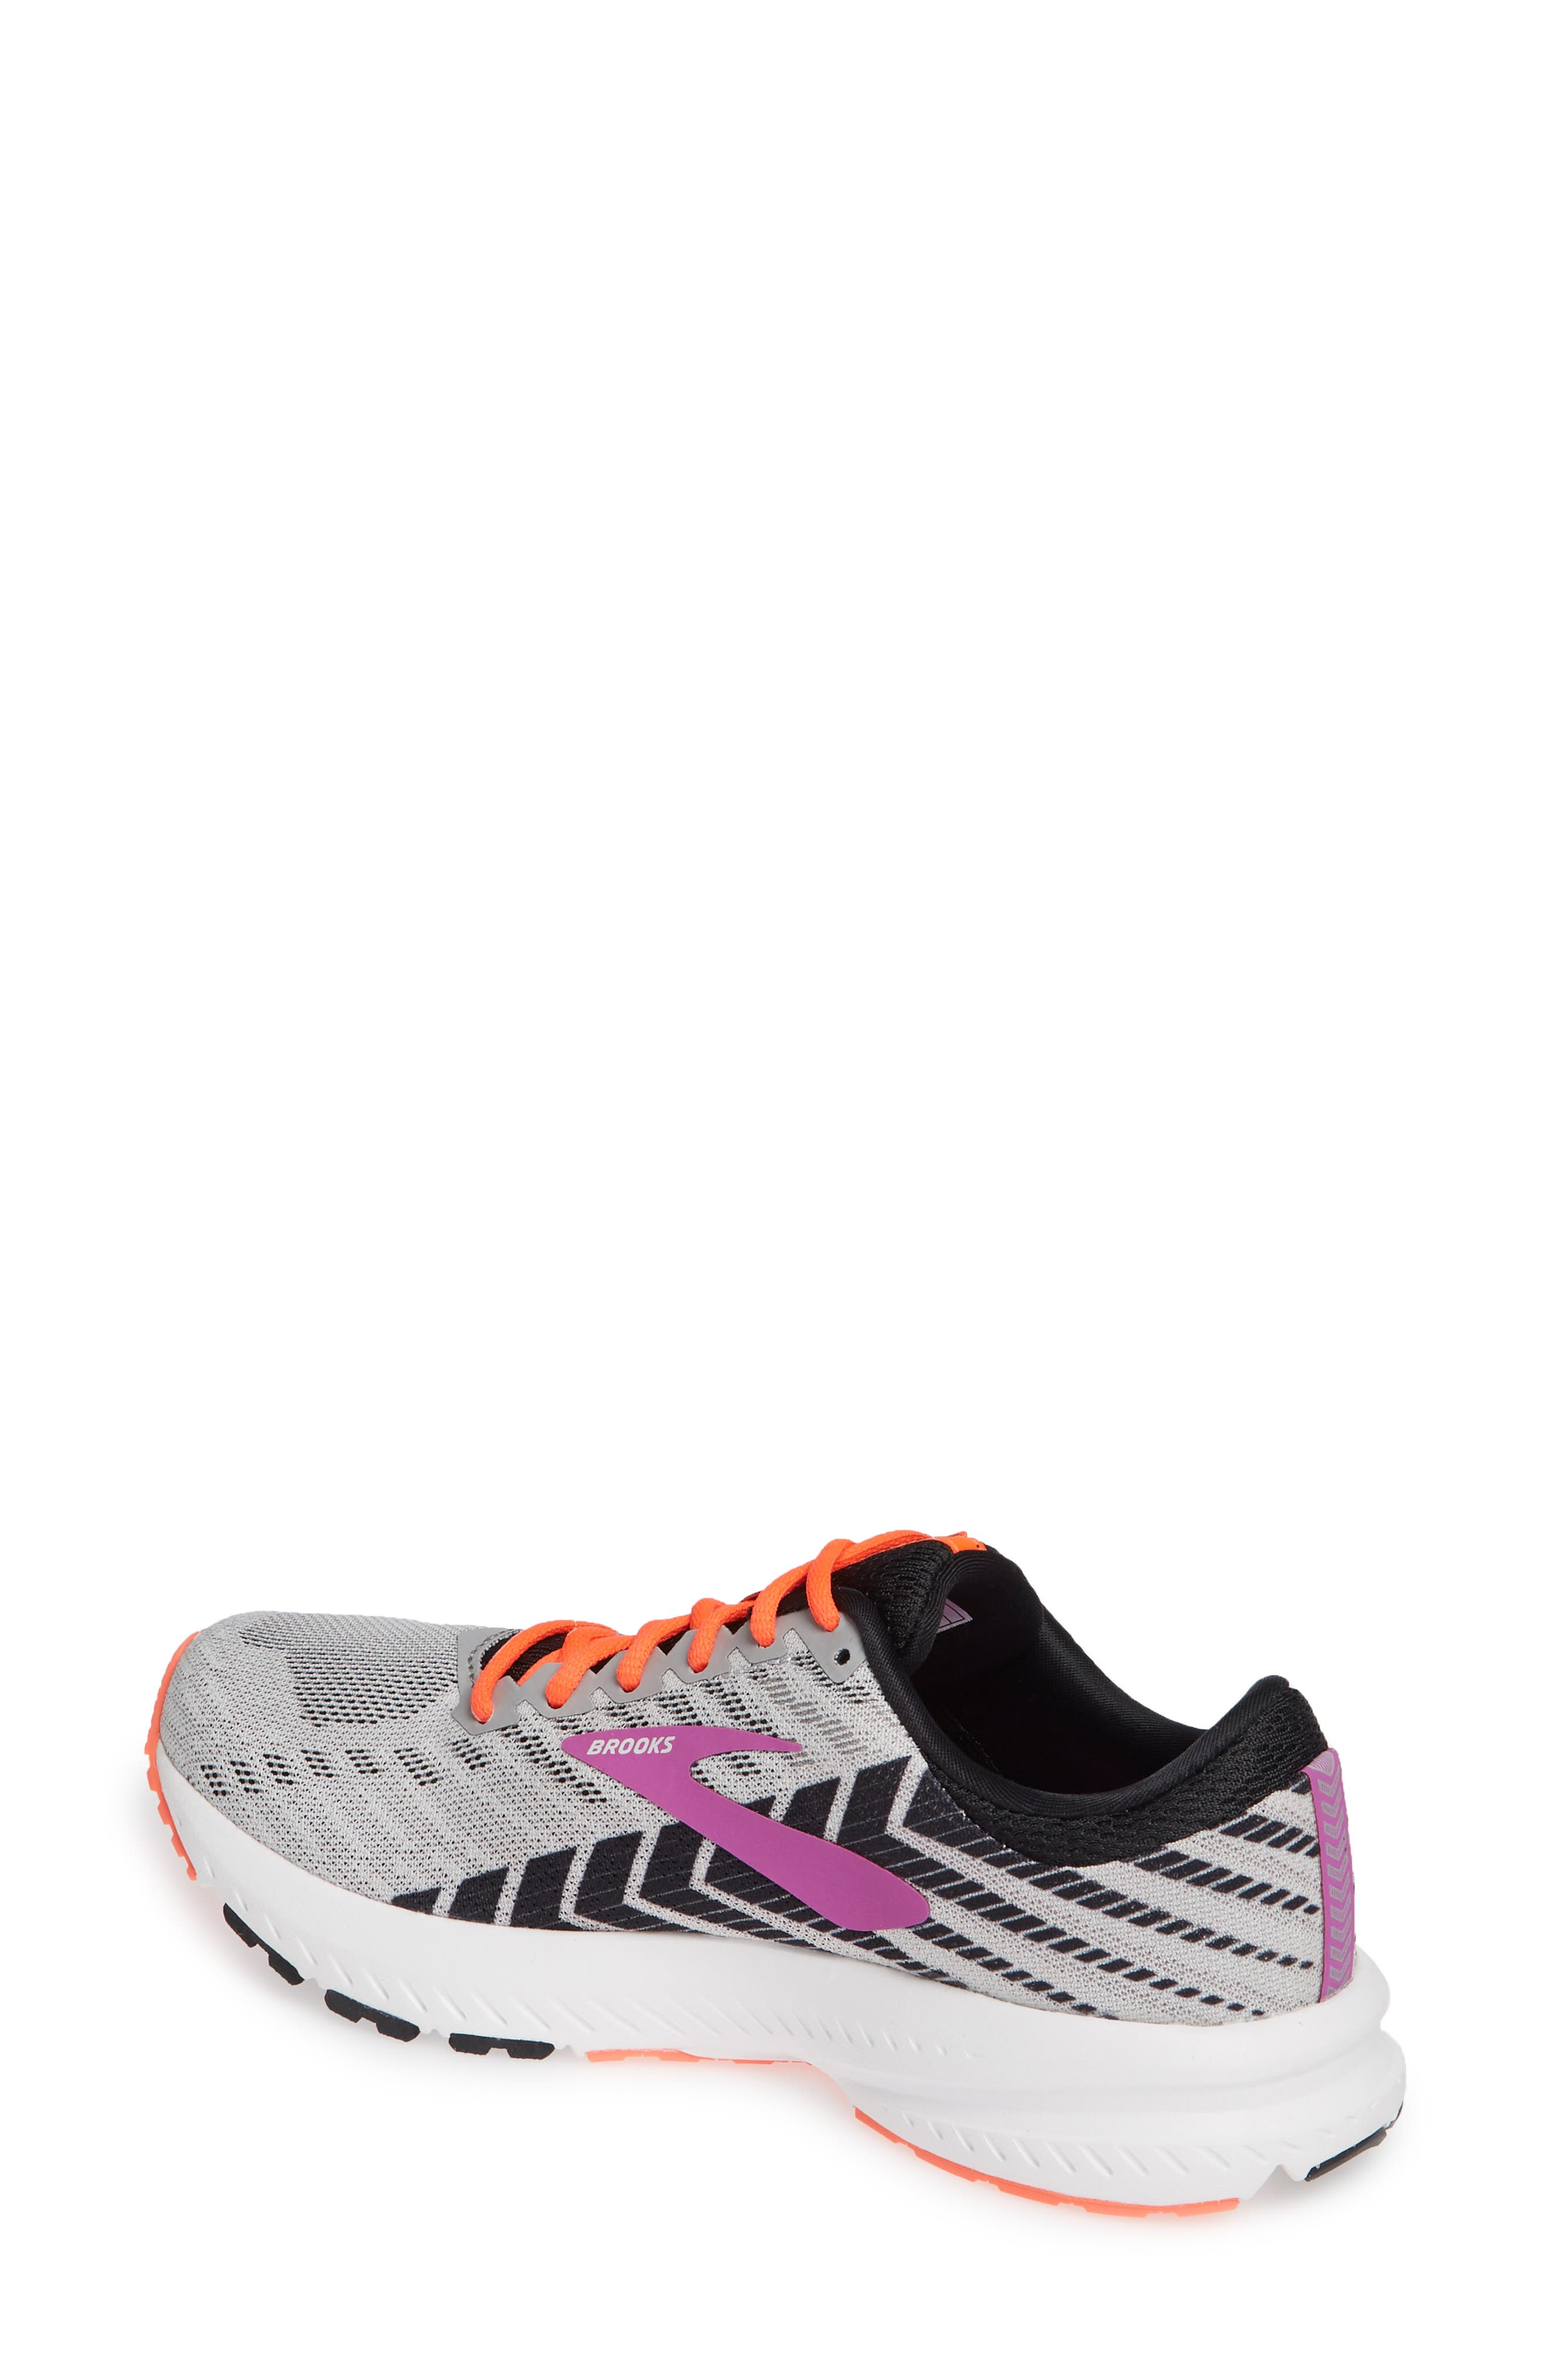 BROOKS, Launch 6 Running Shoe, Alternate thumbnail 2, color, GREY/ BLACK/ PURPLE